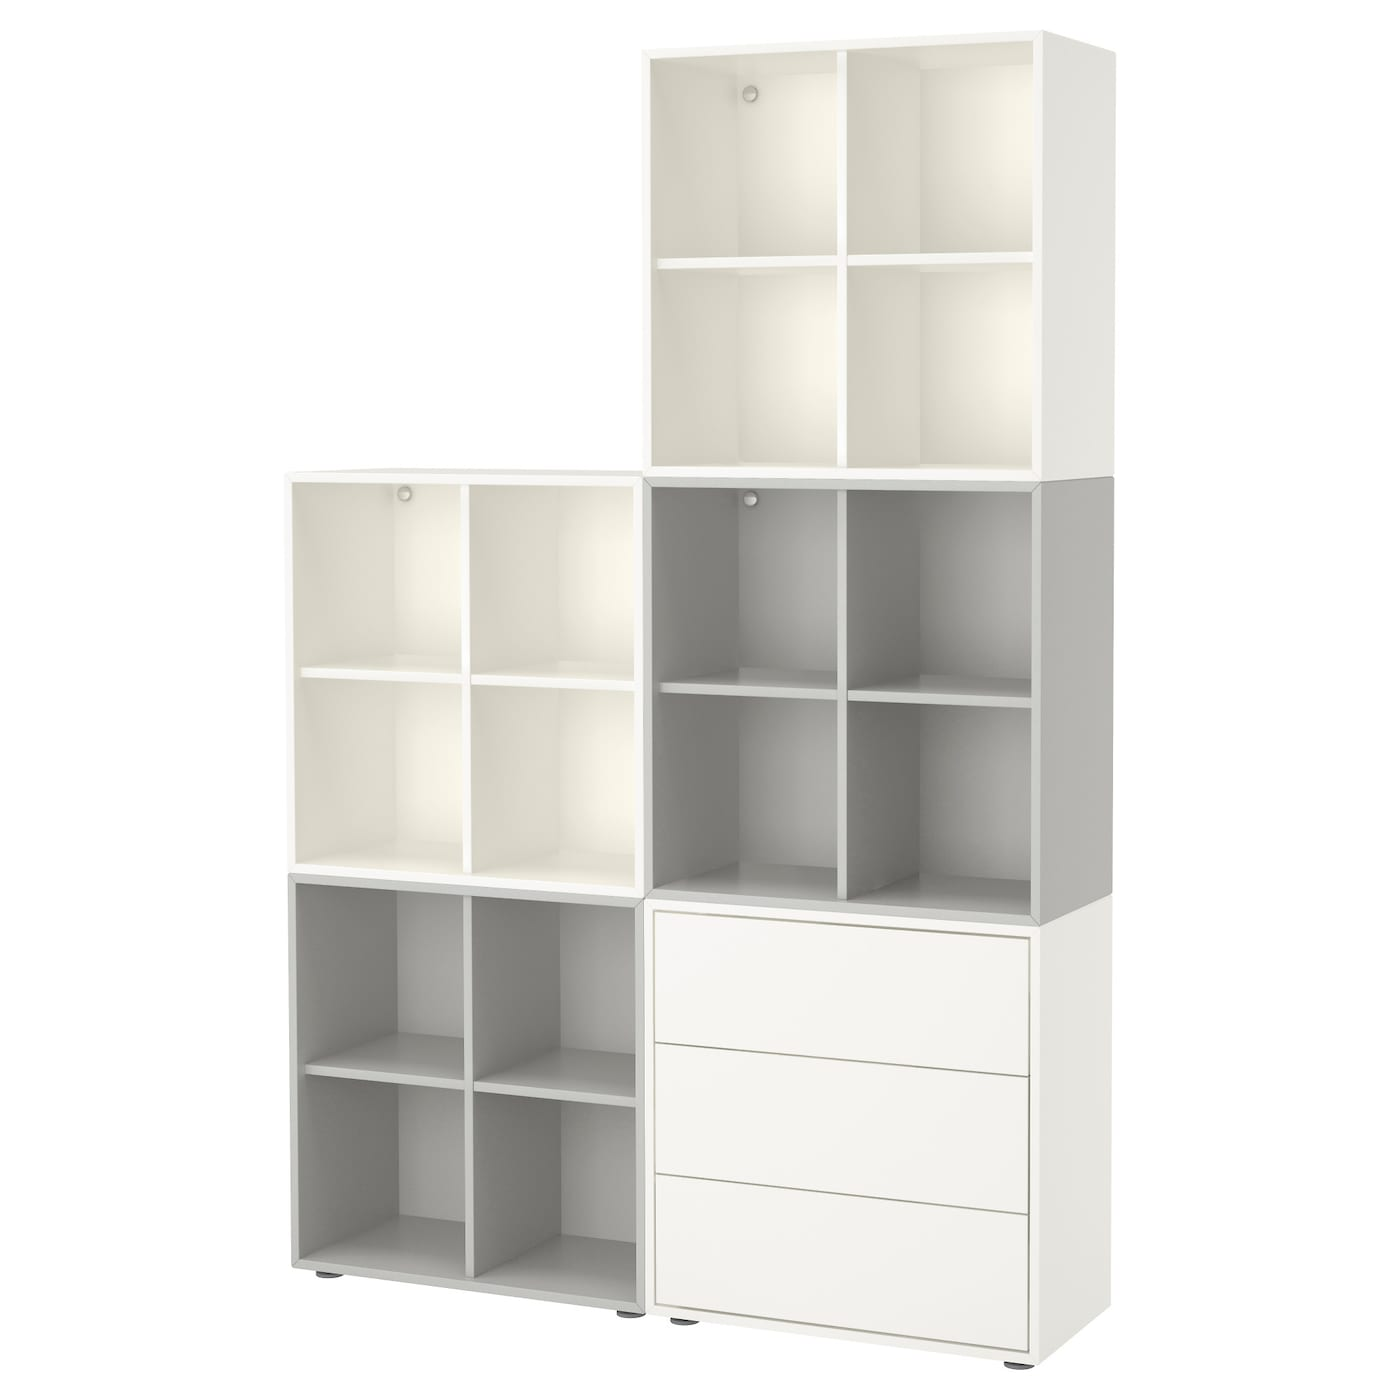 eket cabinet combination with feet white light grey 140 x 35 x 212 cm ikea. Black Bedroom Furniture Sets. Home Design Ideas